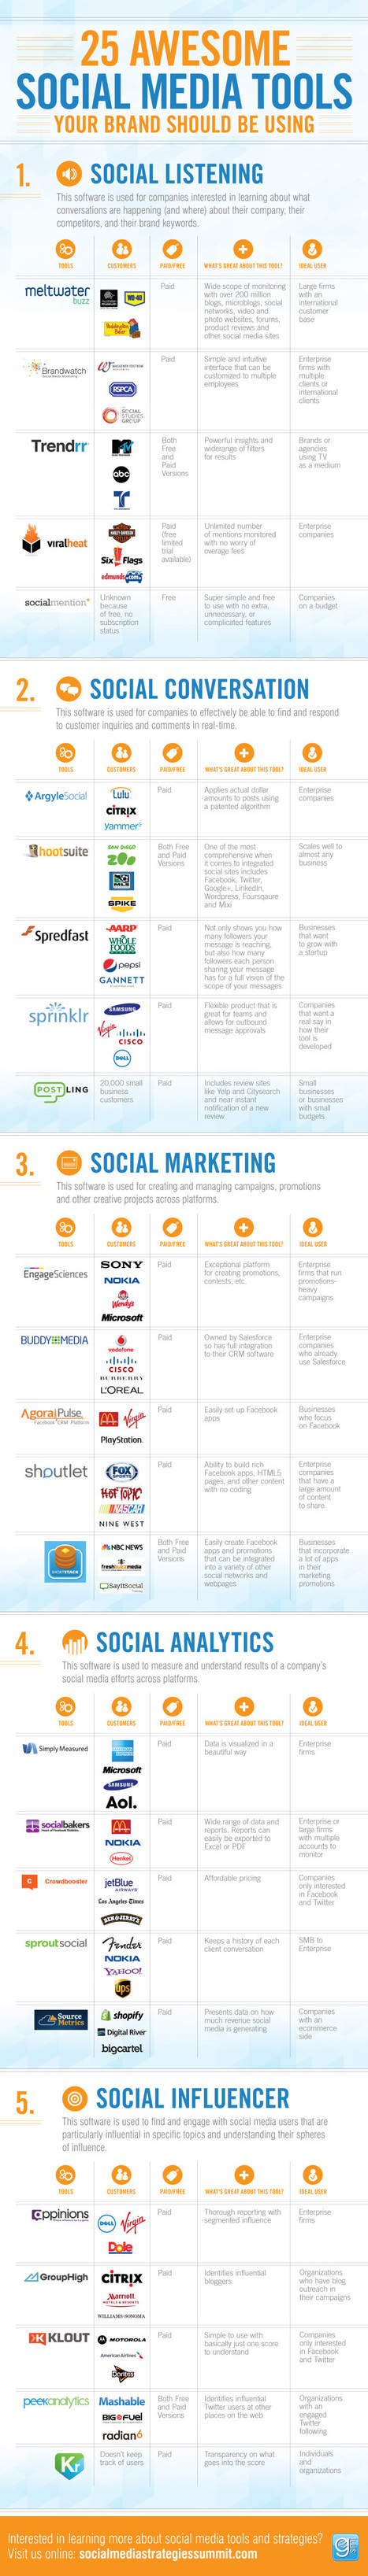 Infographic: 25 Awesome Social Media Tools - Ma... | Insights | Scoop.it